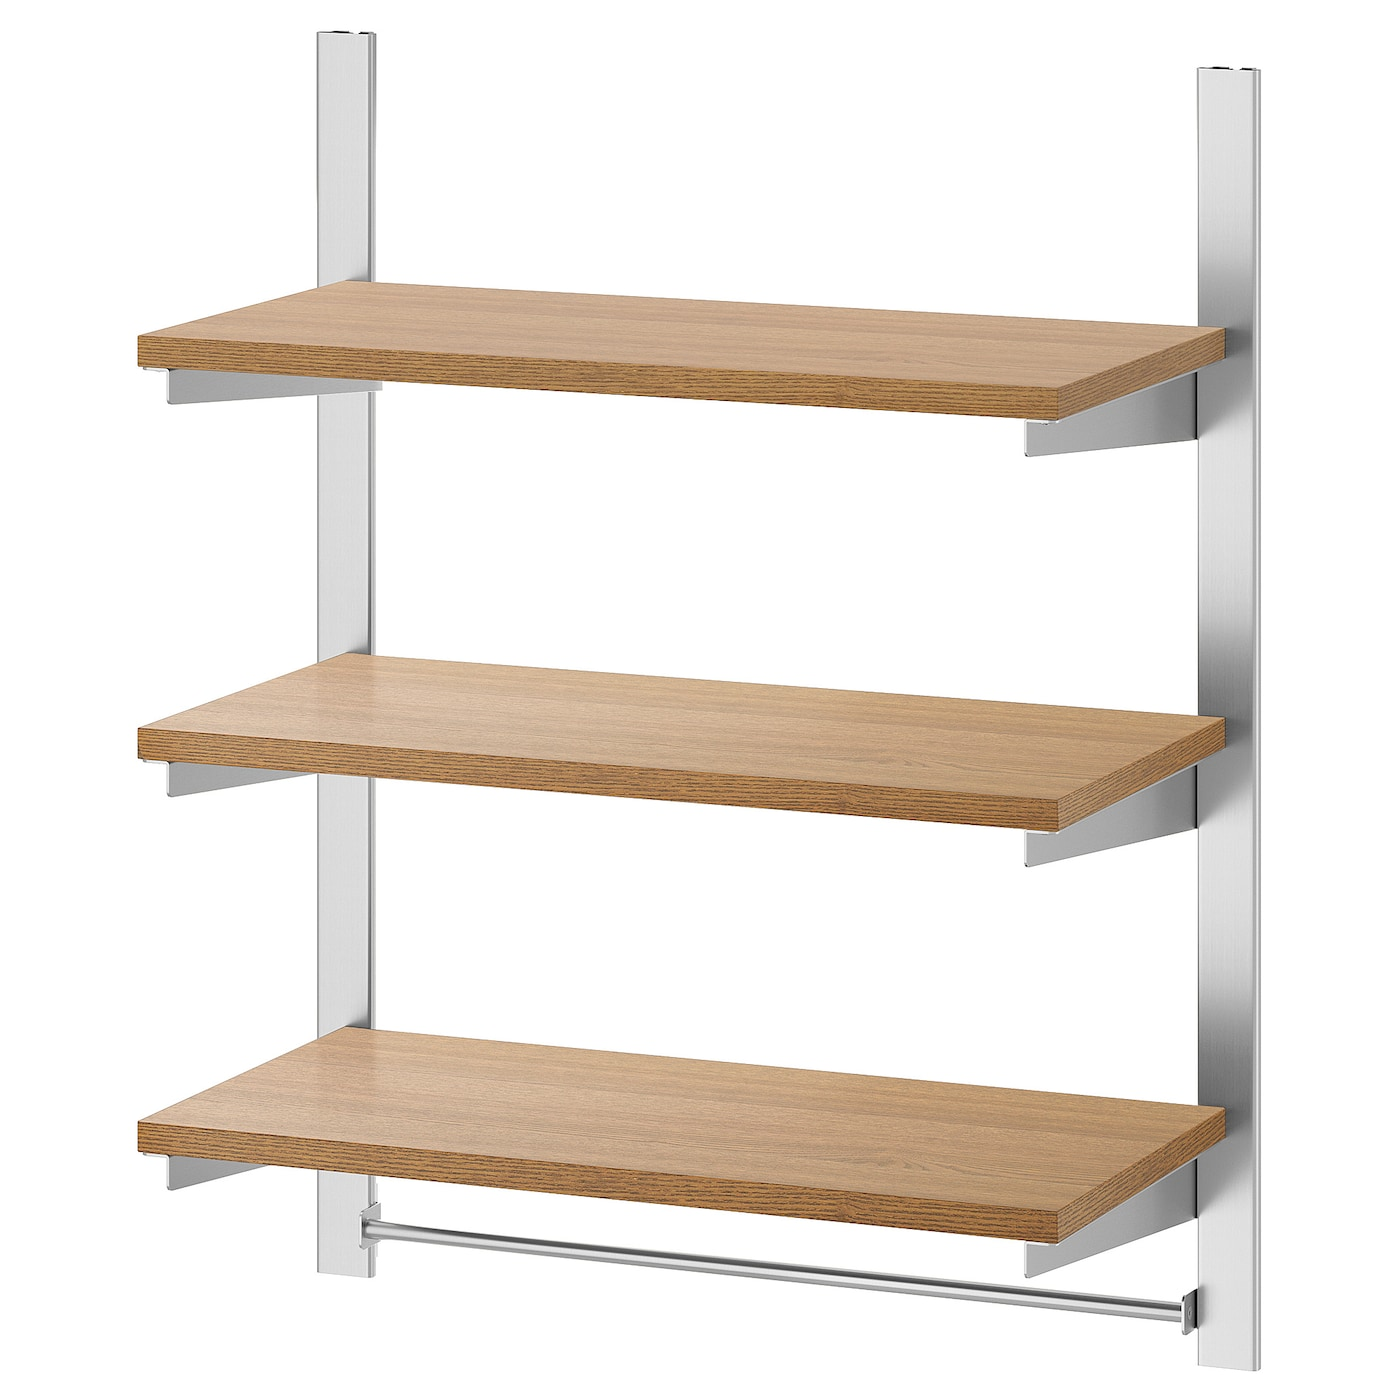 Kungsfors Suspension Rail W Shelves And Rail, Stainless Steel, Ash